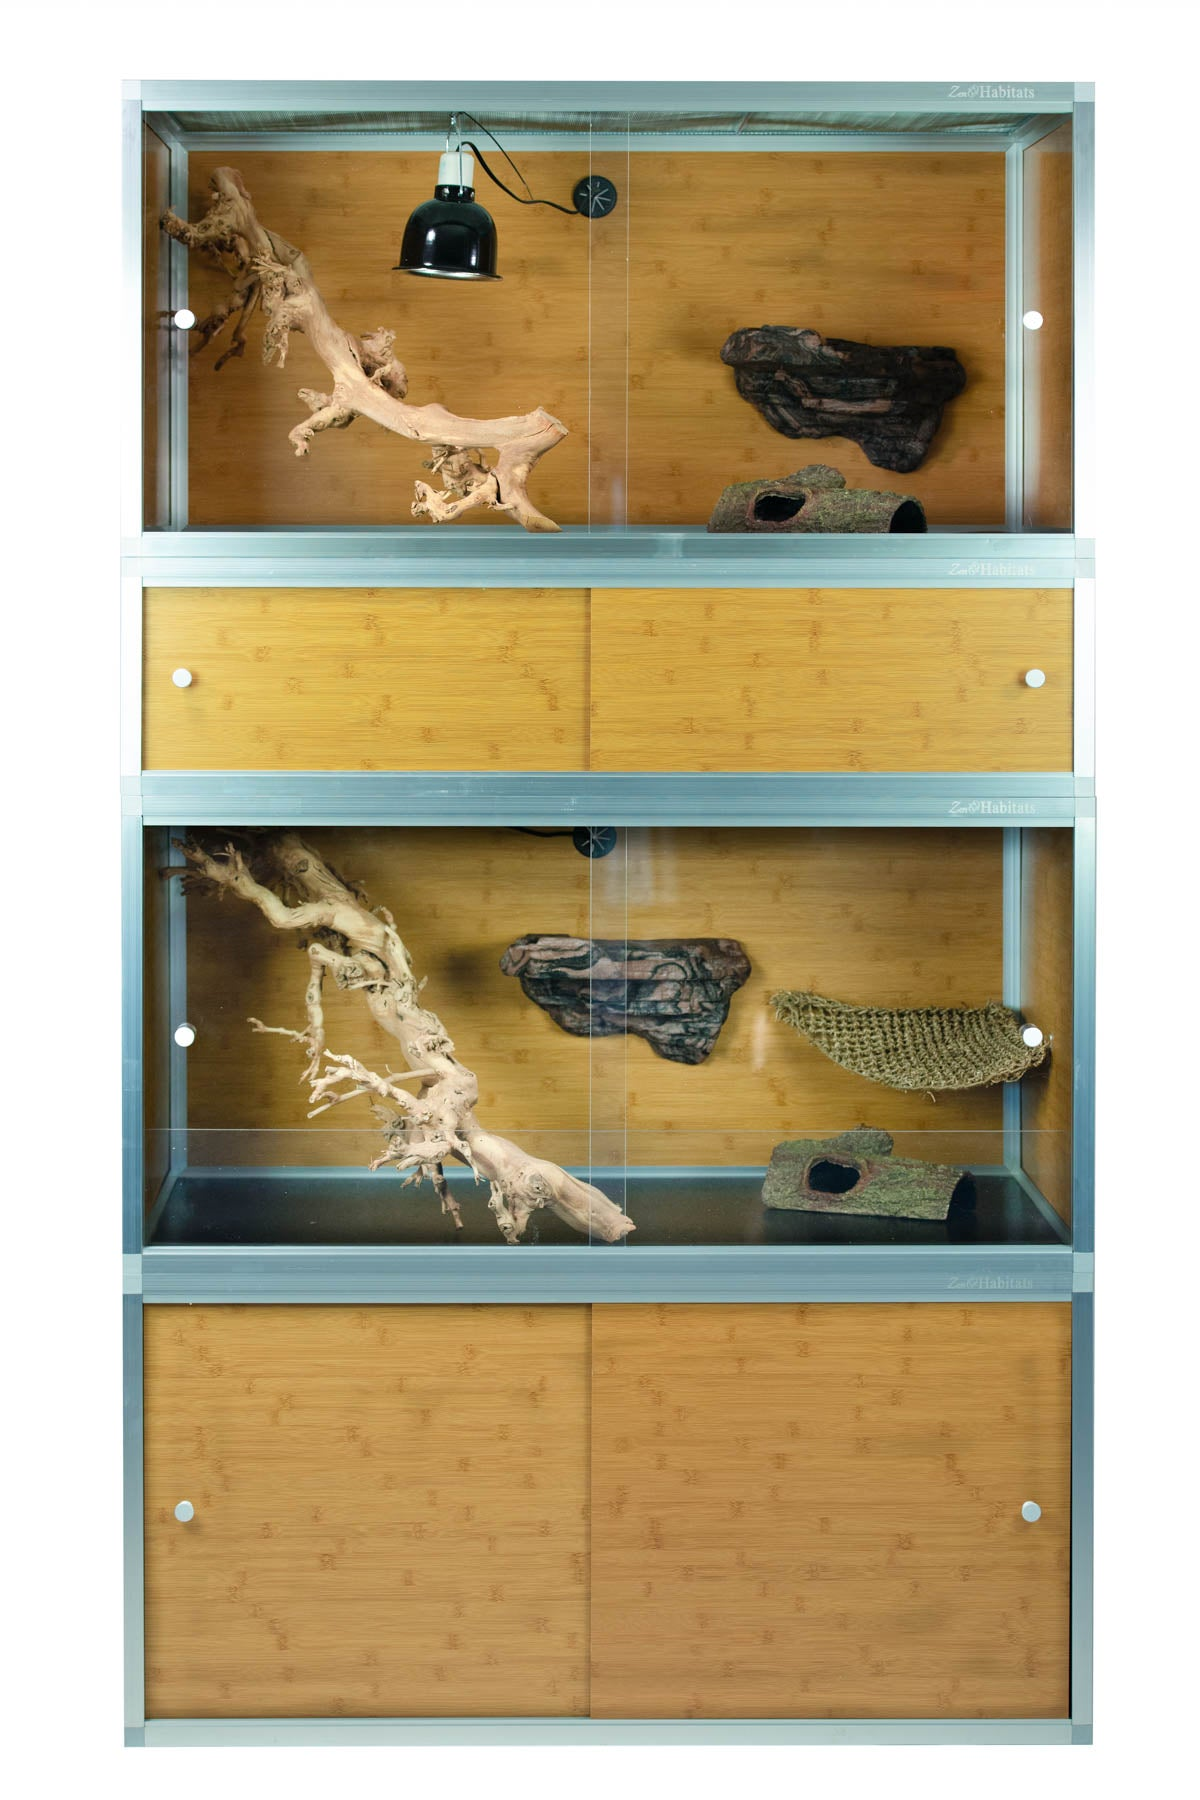 4'x2'x2' Wood Panel Reptile Enclosure by Zen Habitats